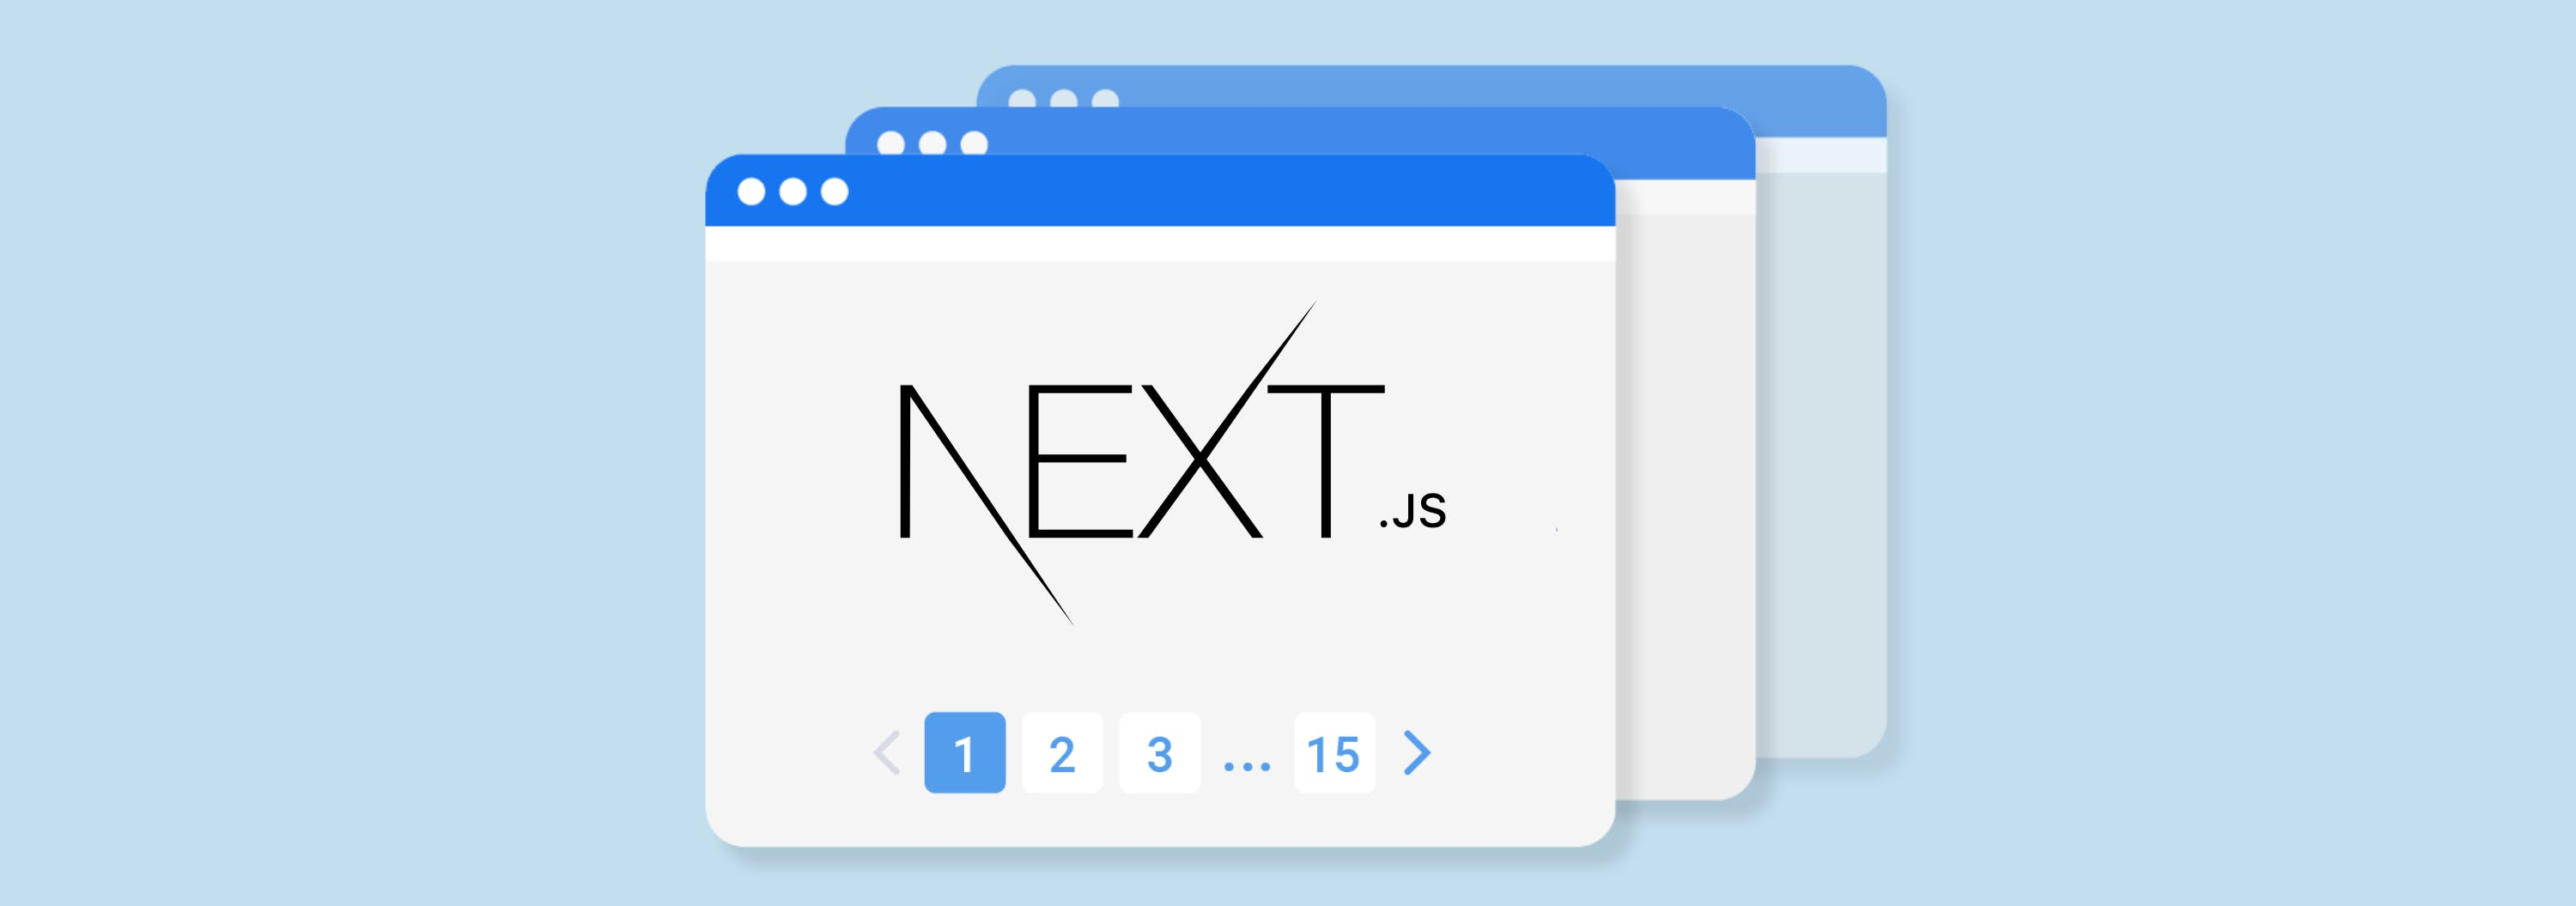 Simple Pagination in Next.js using react-paginate